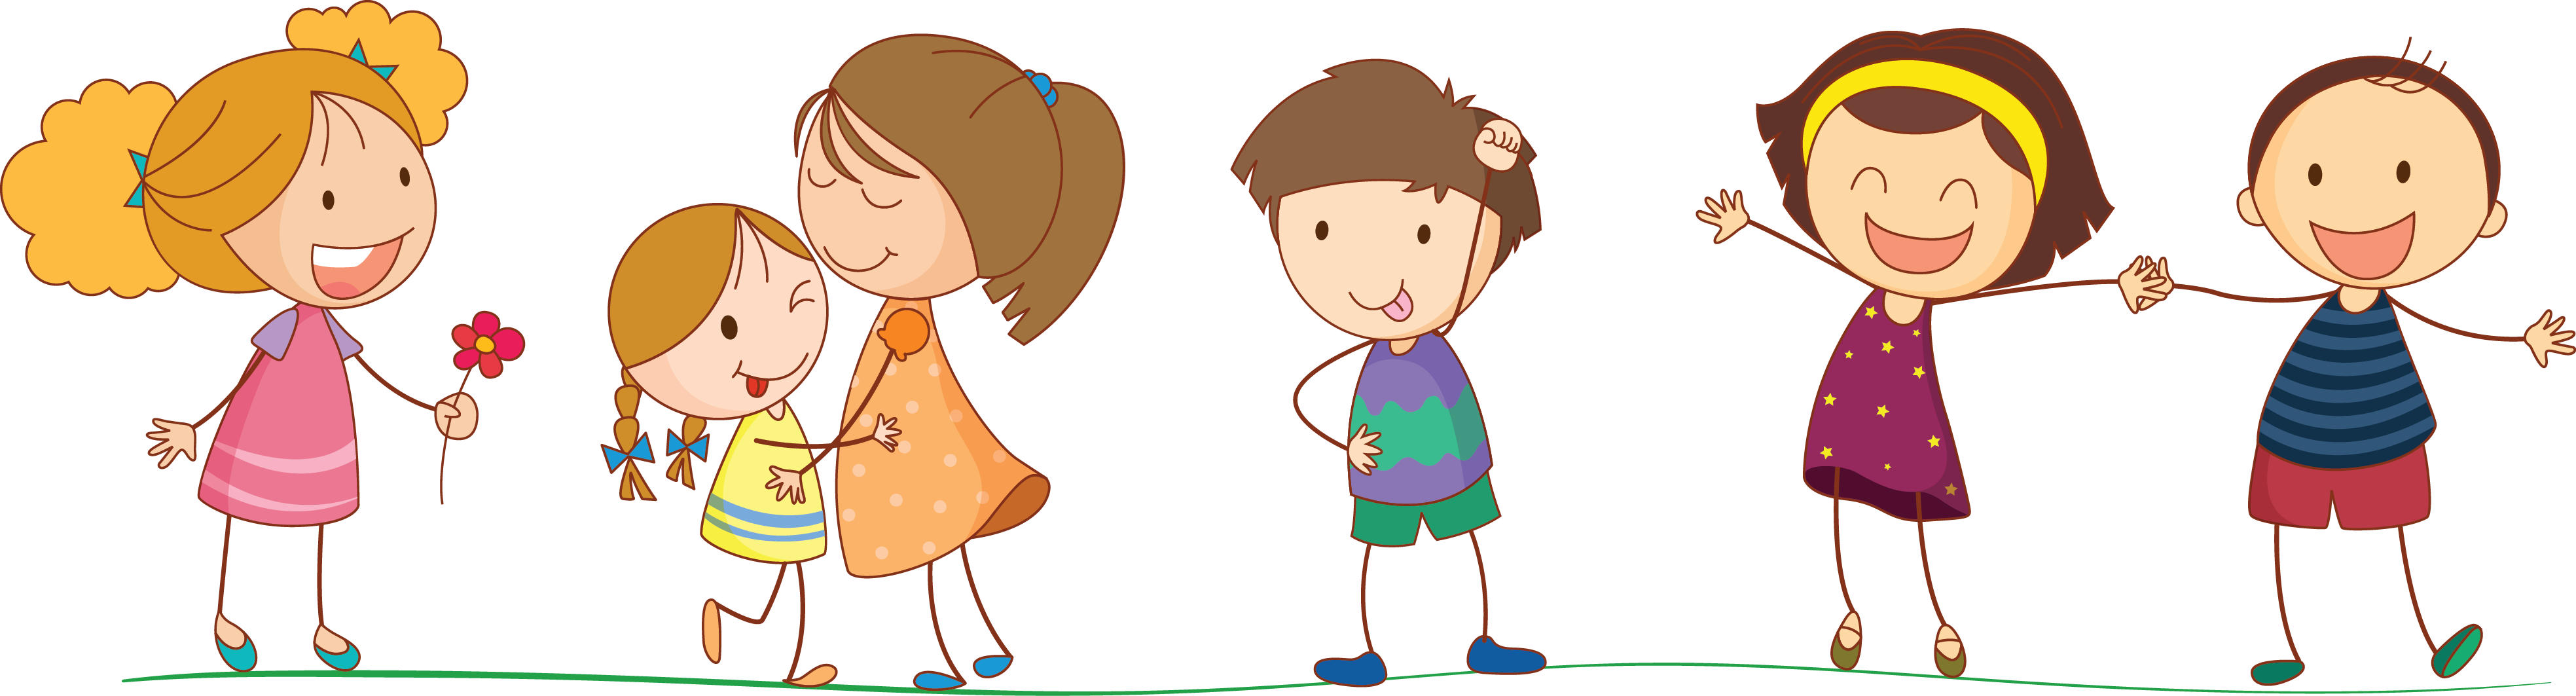 People cartoon png. Kids transparent pictures free